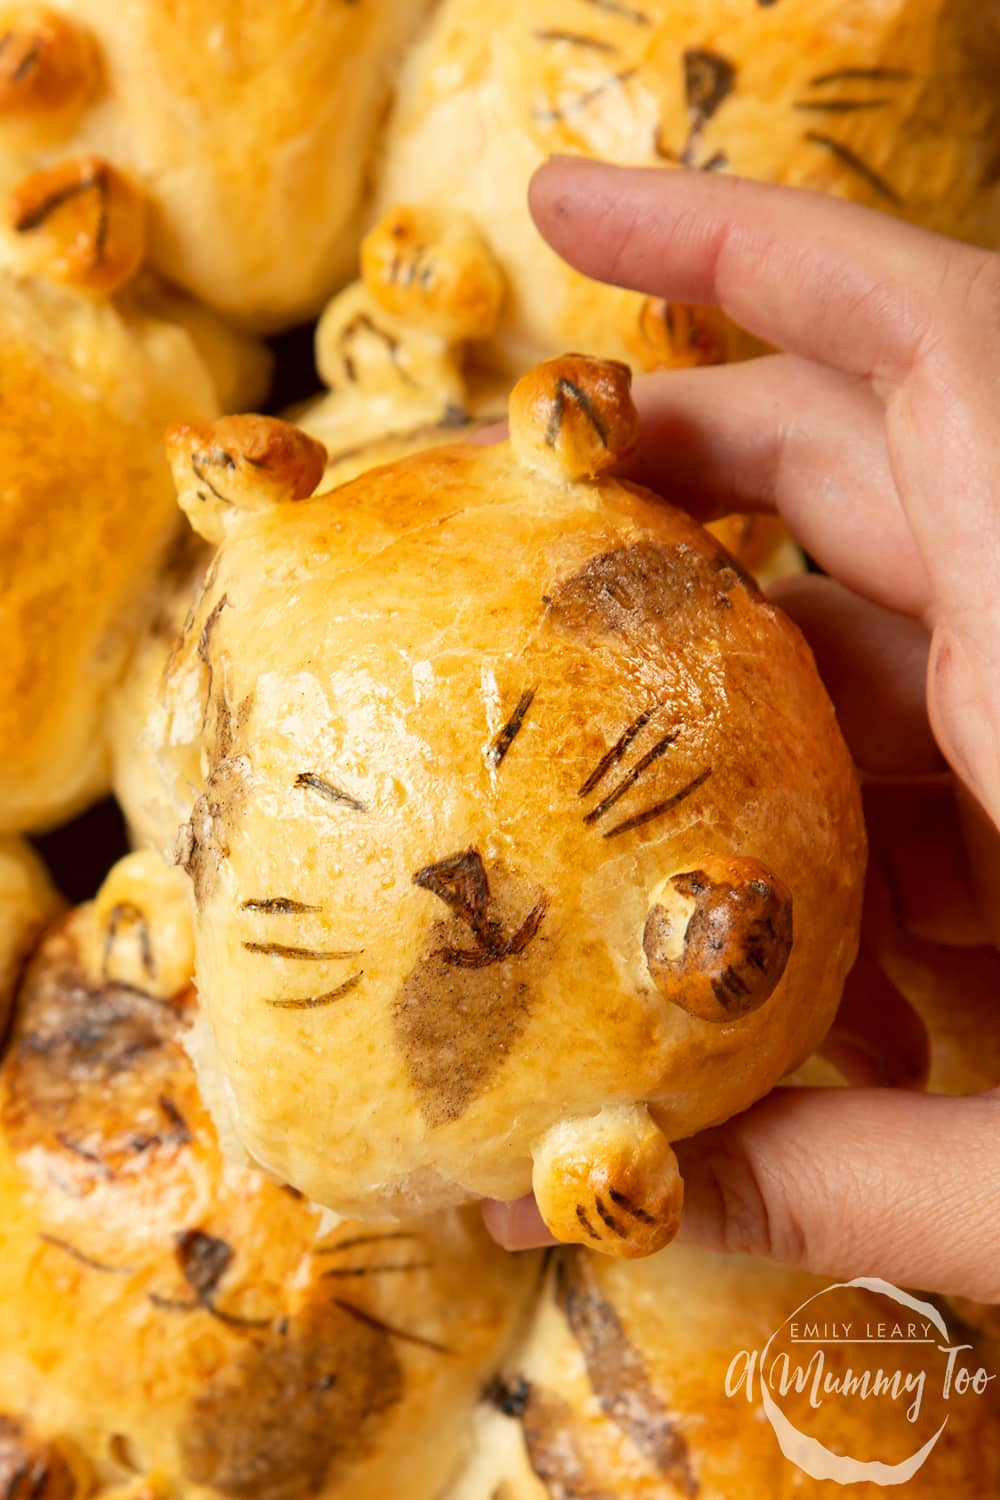 Kim-Joy's Tangzhong Cat Buns - close up of one bun, showing a happy cat with closed eyes made from bread